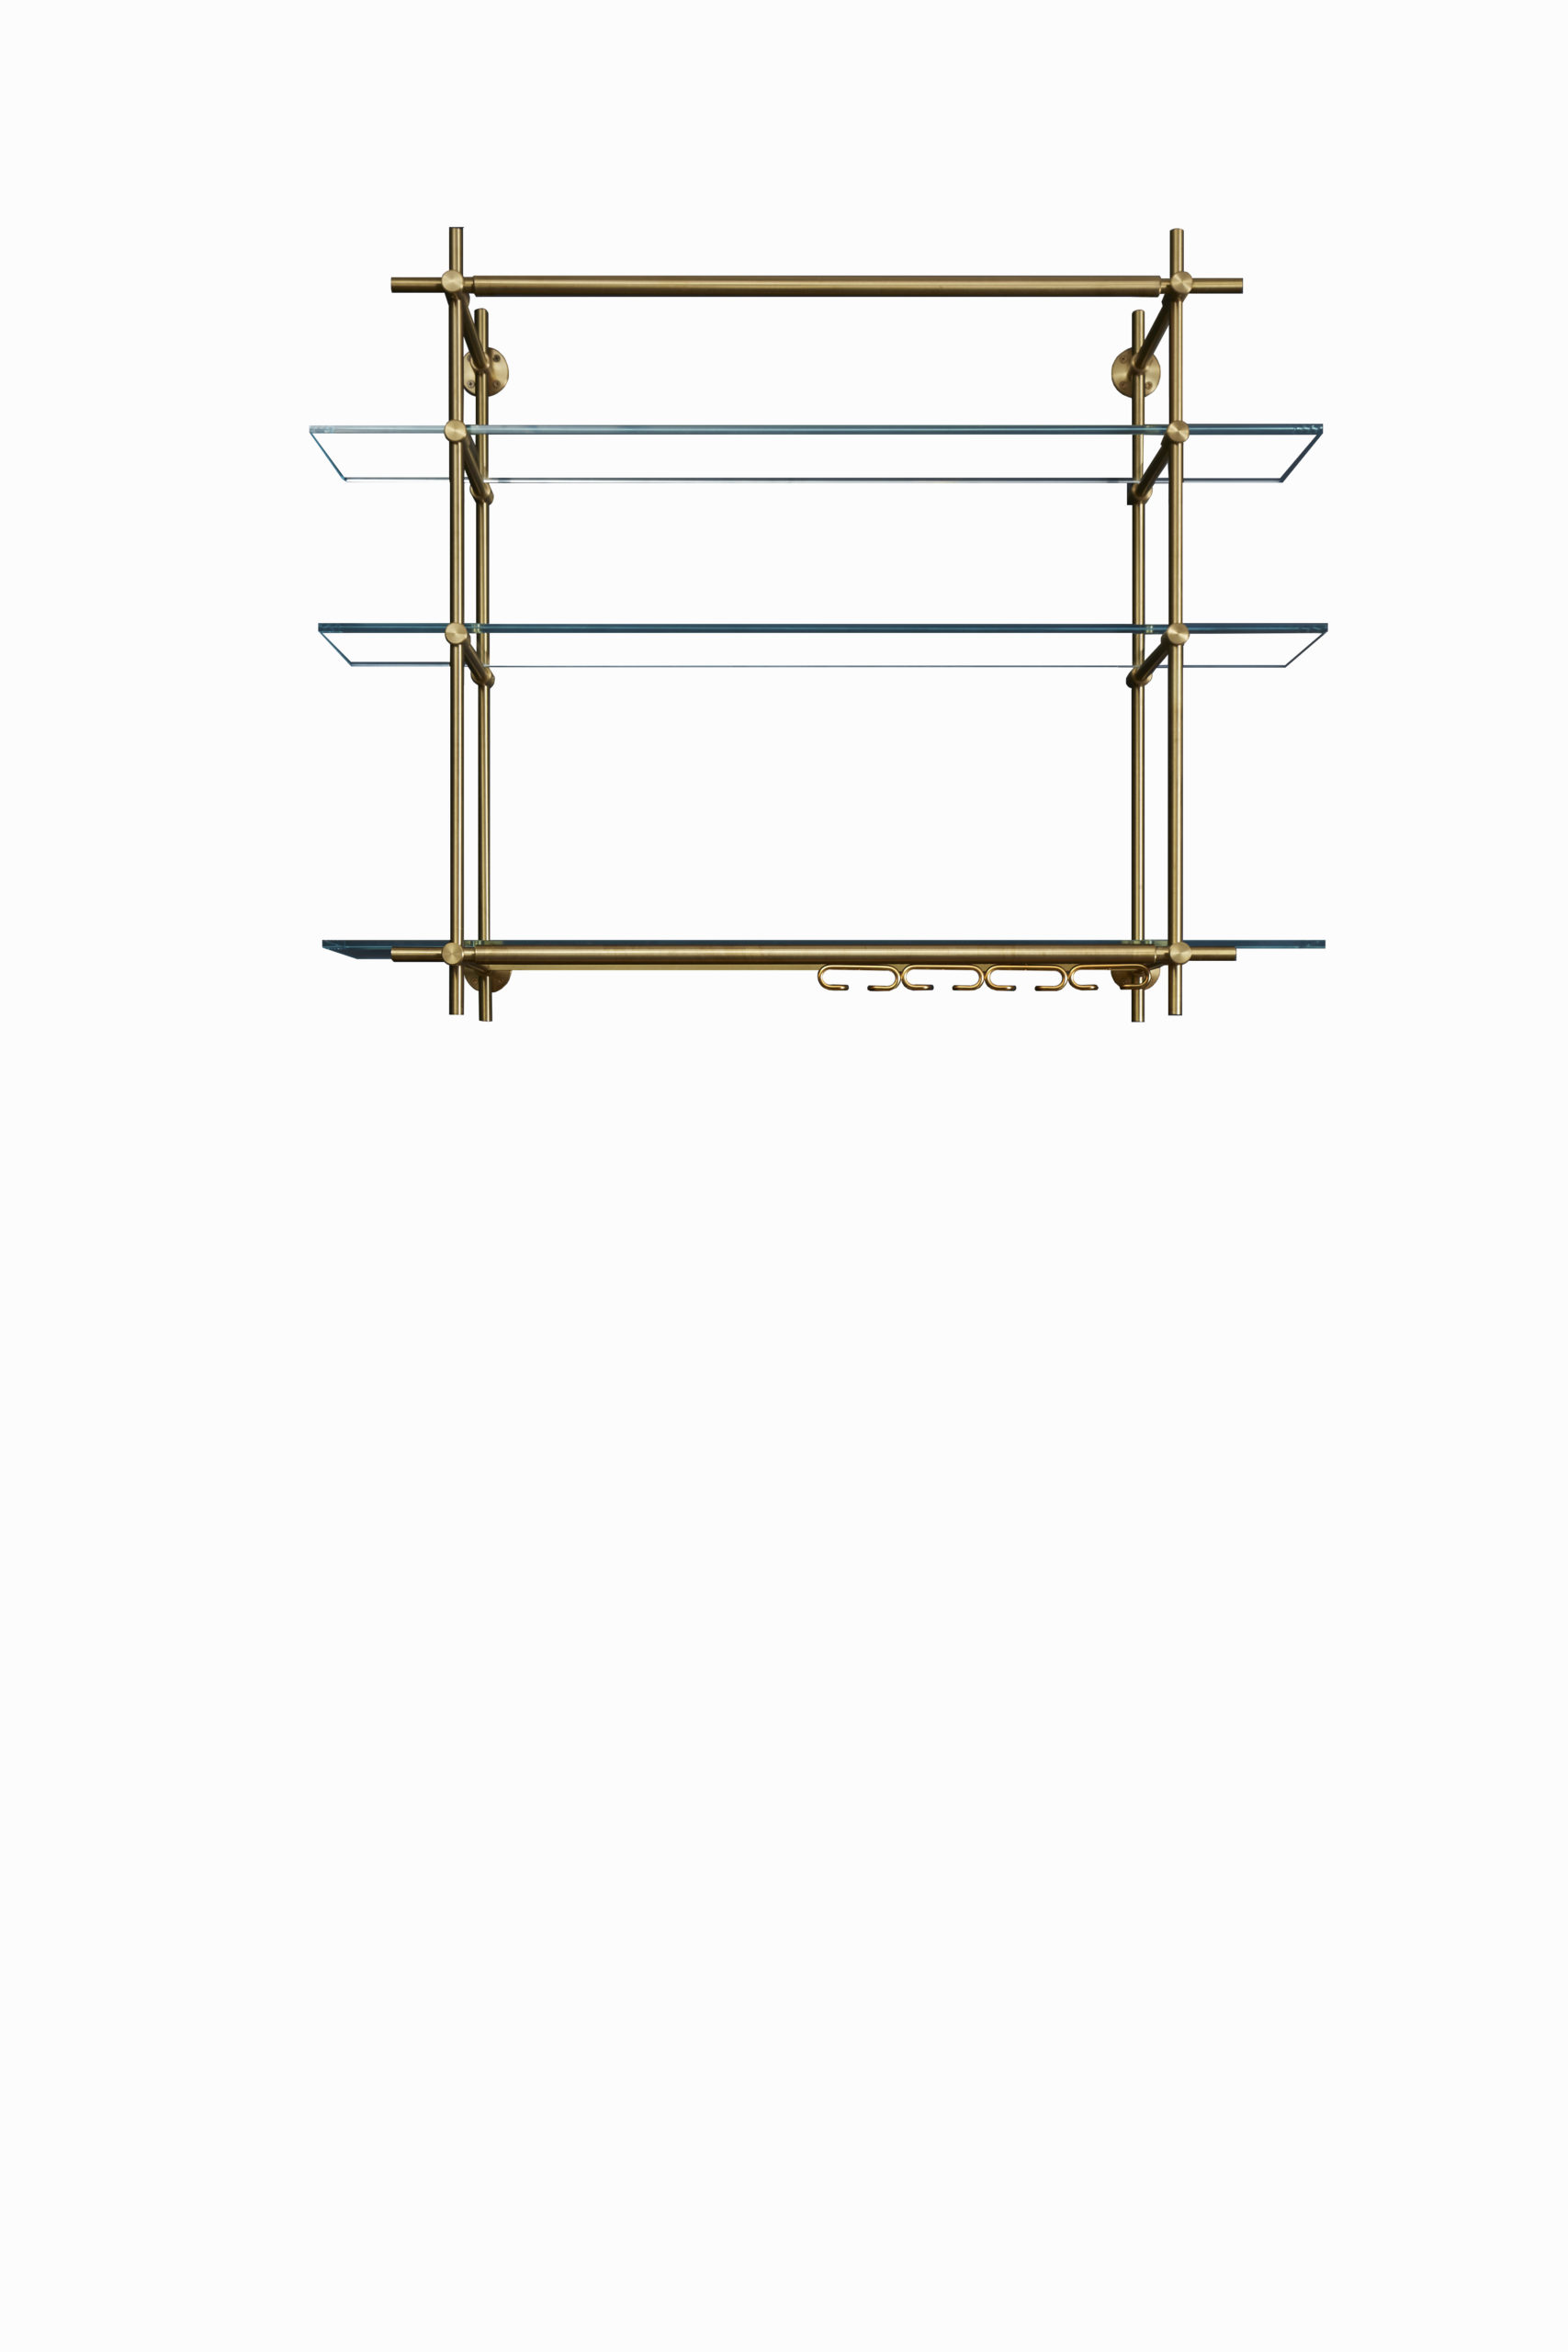 amuneal_products_WNWN_NYDC_1Lacquer-Bar-FRONT-Uppers-only-Whited-out-Empty-amuneal_nycshowroom_2019_0331_proof-scaled-1